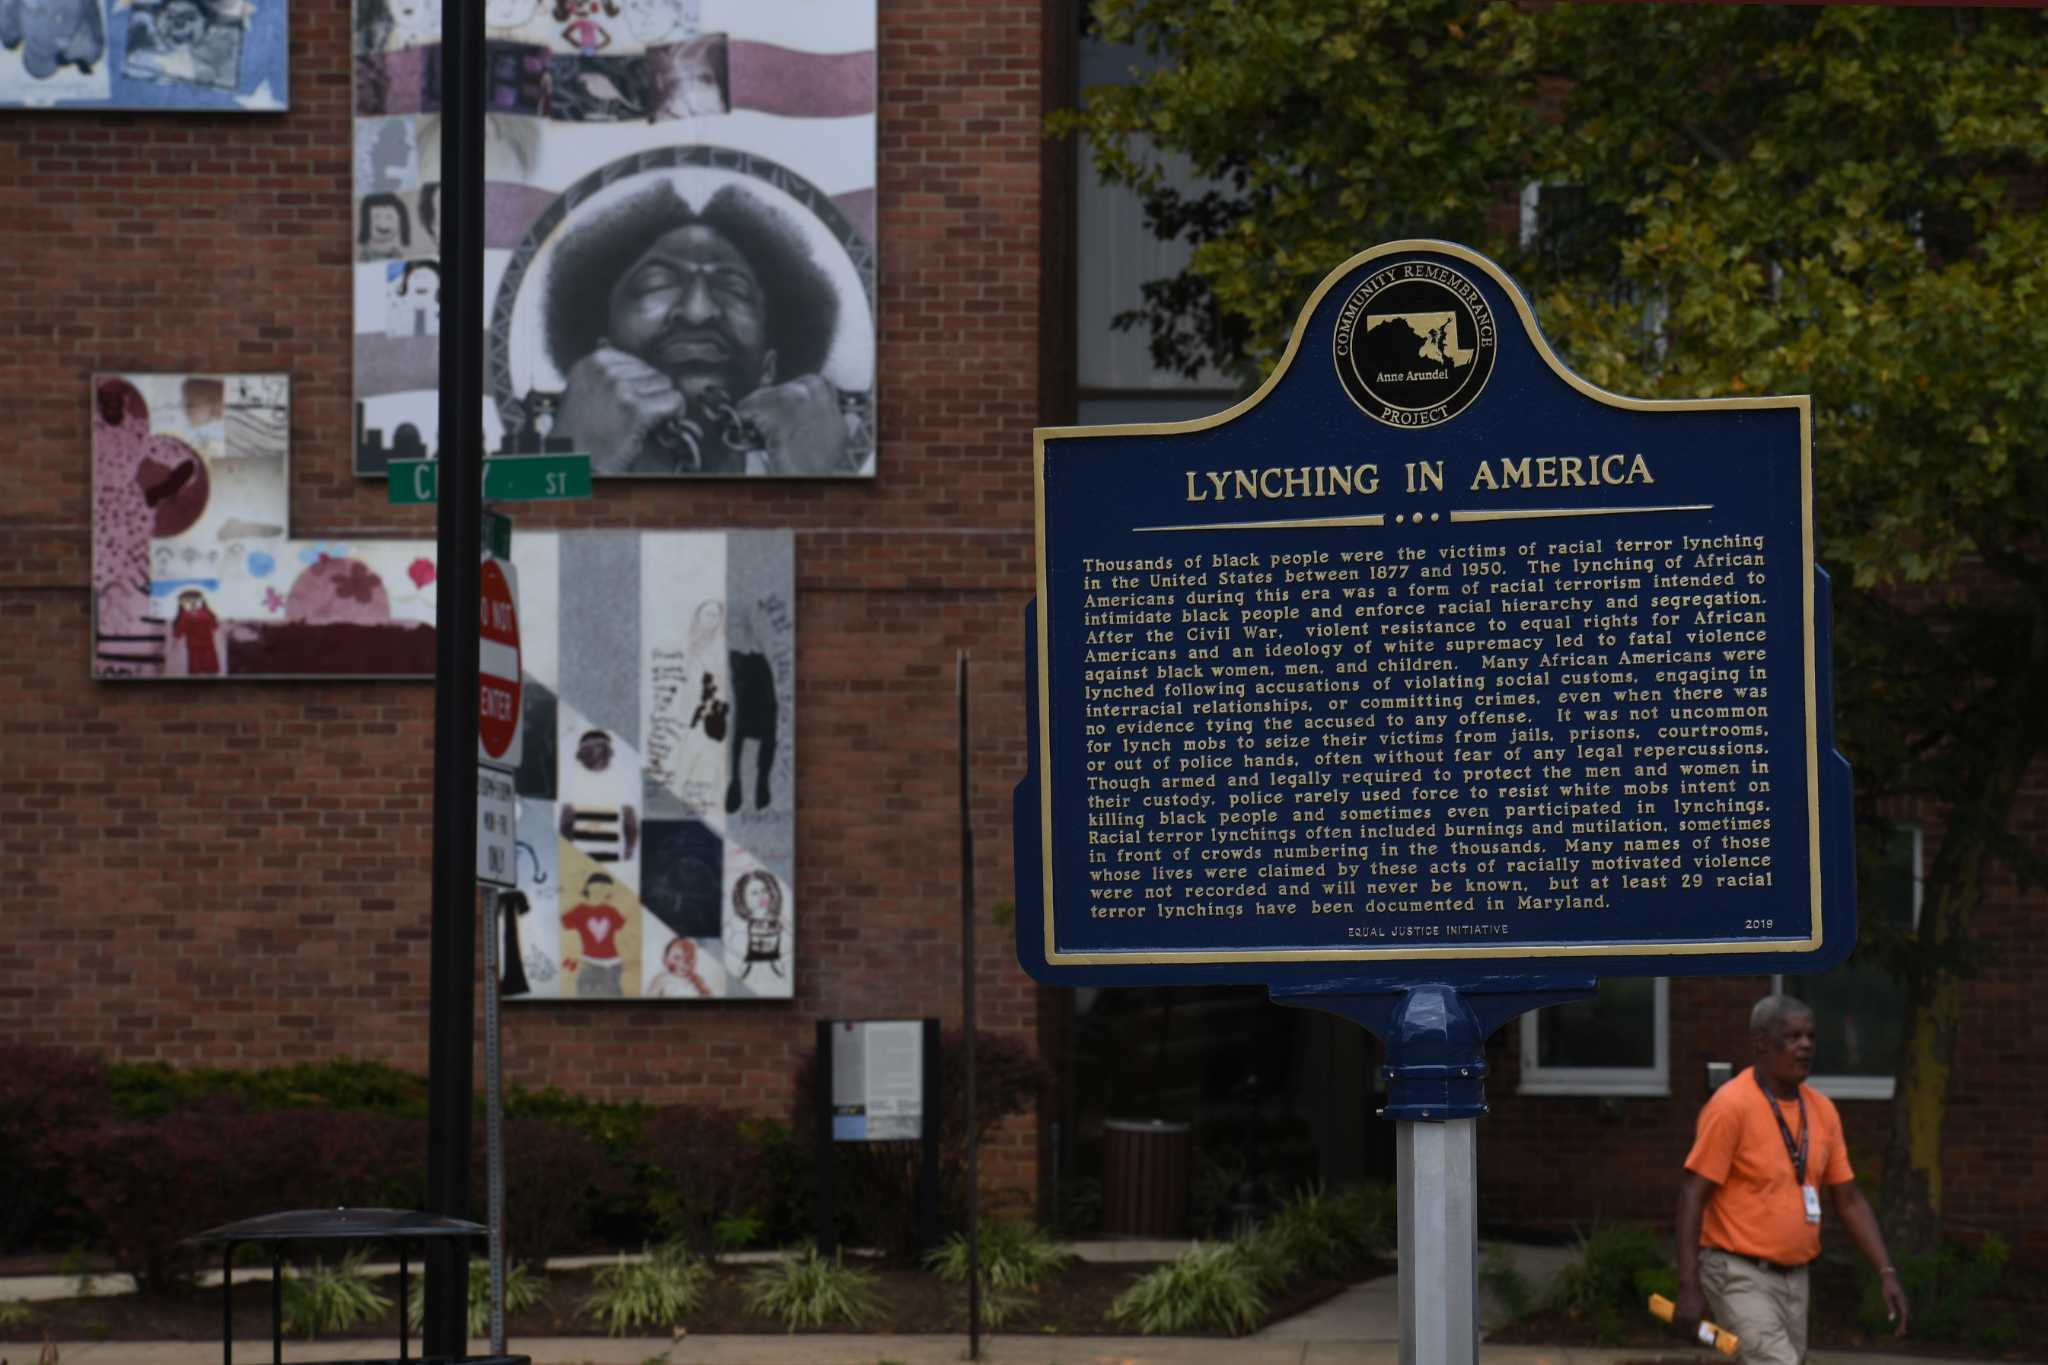 Landmark Maryland commission begins tackling 'unconfronted truth' of racially motivated lynchings in state